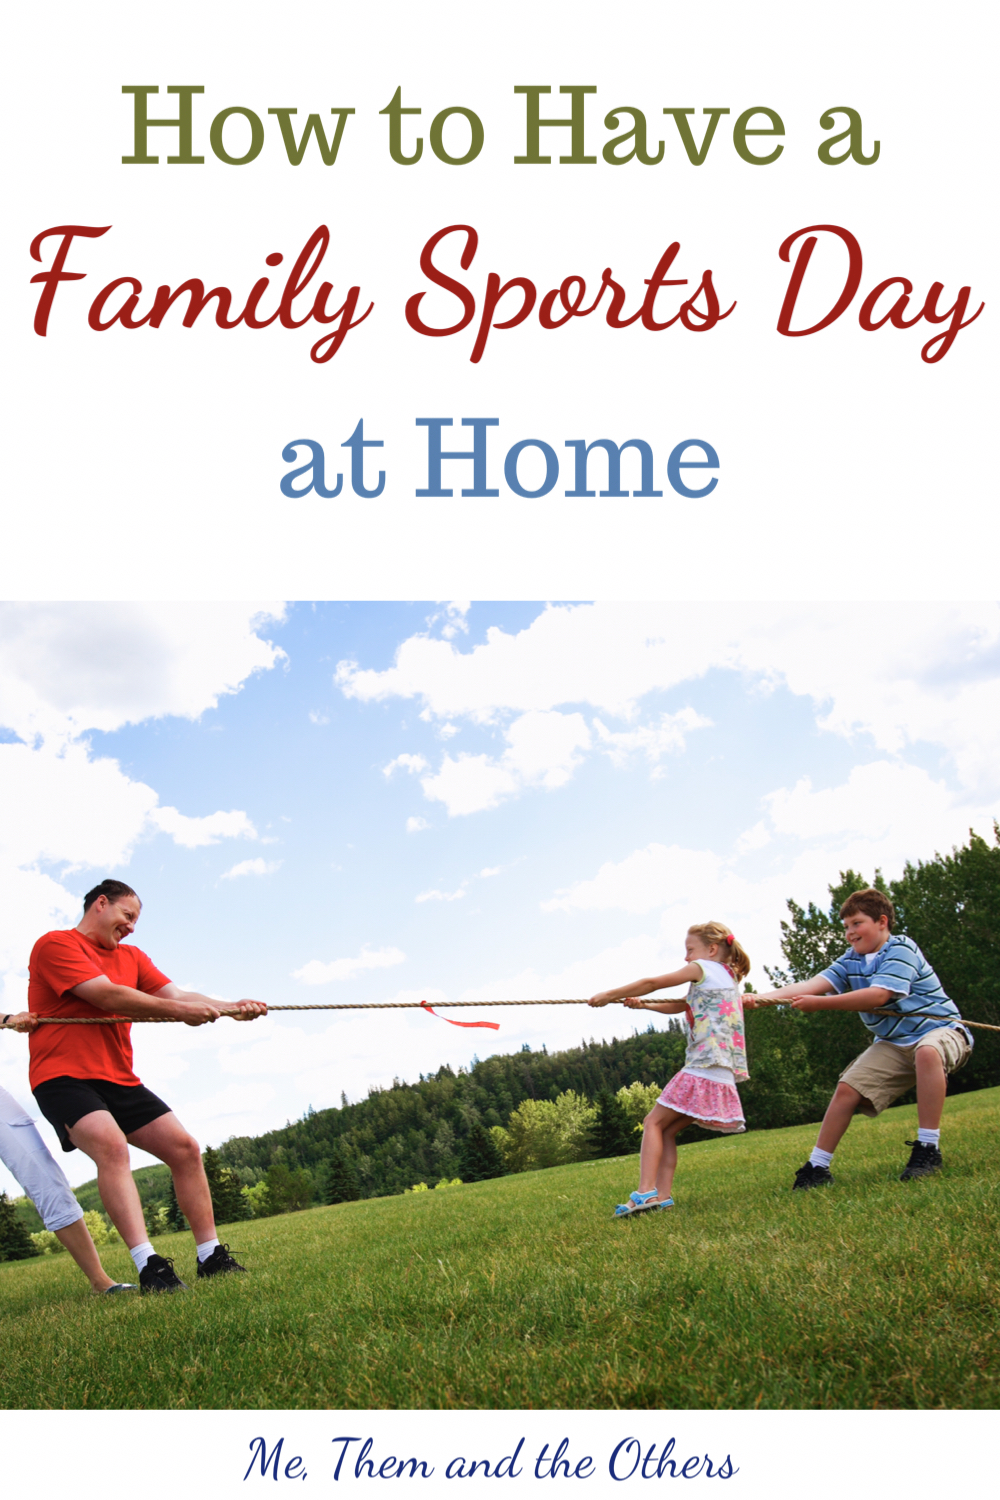 How to have a family sports day at home